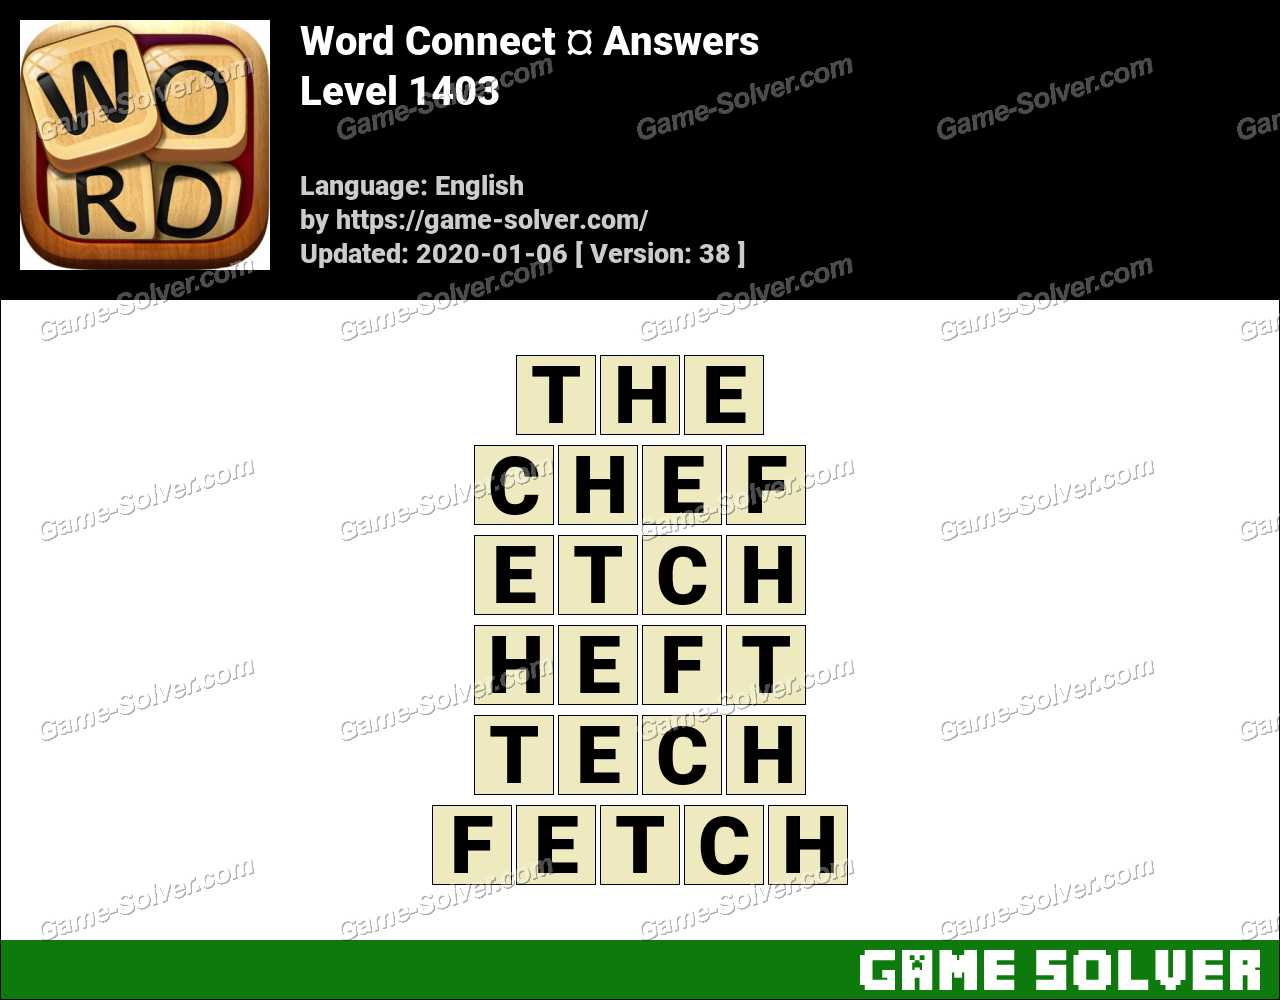 Word Connect Level 1403 Answers